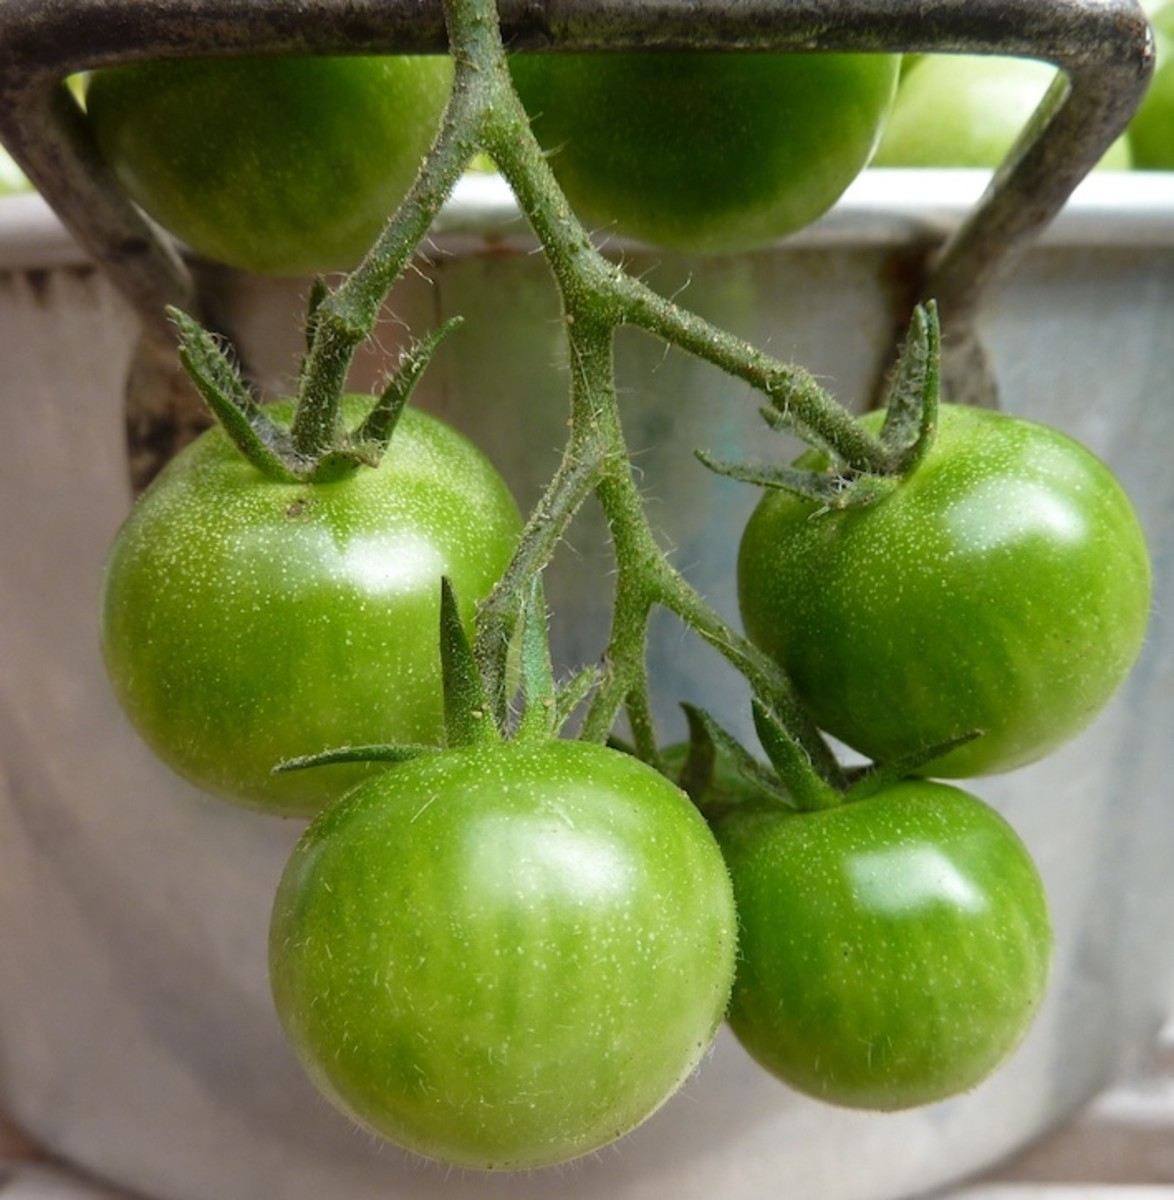 the-jewish-origins-of-fried-green-tomatoes-and-a-kosher-non-dairy-gluten-free-recipe